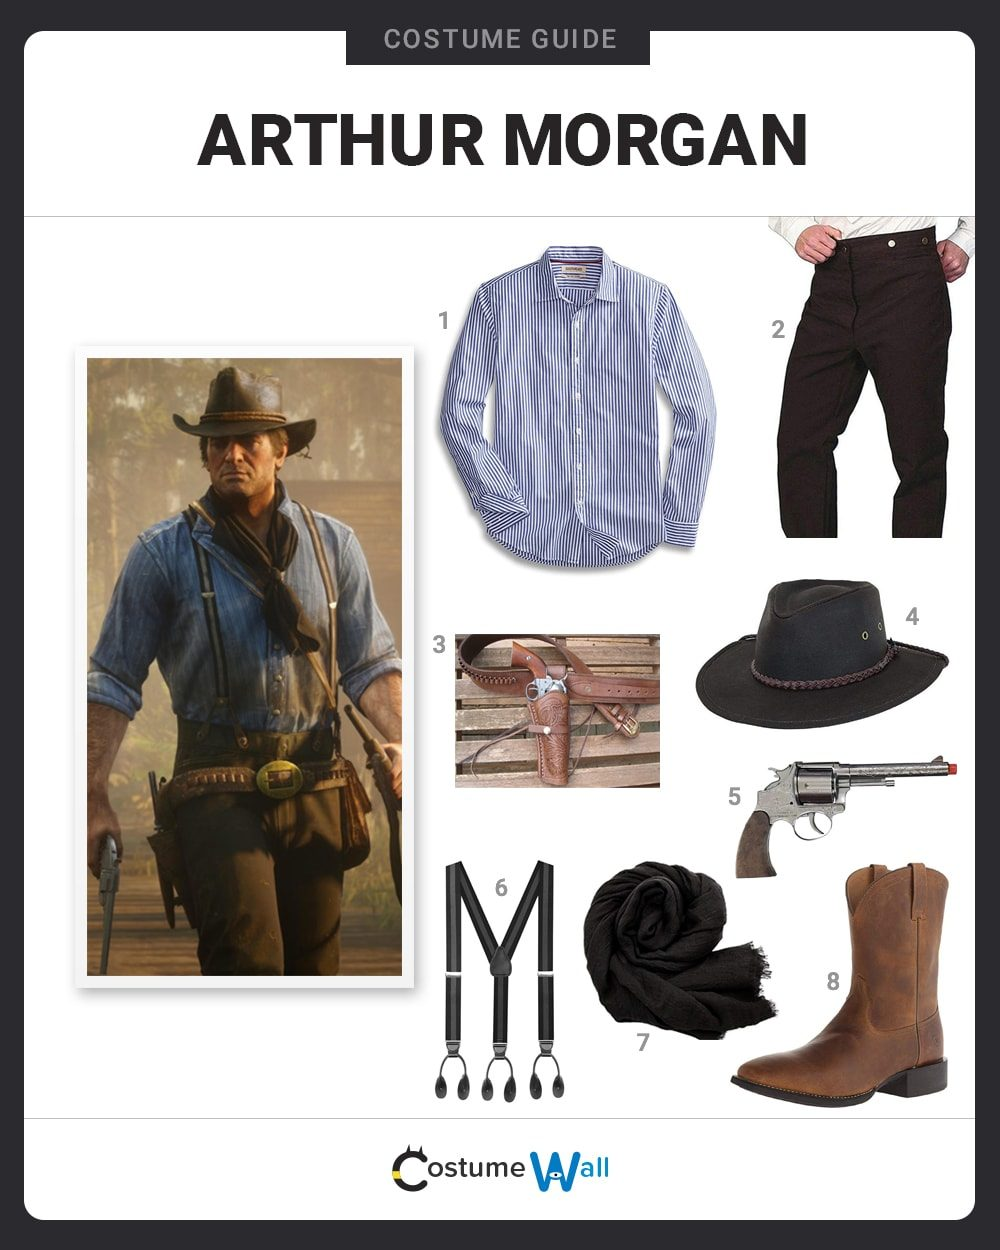 Arthur Morgan Costume Guide